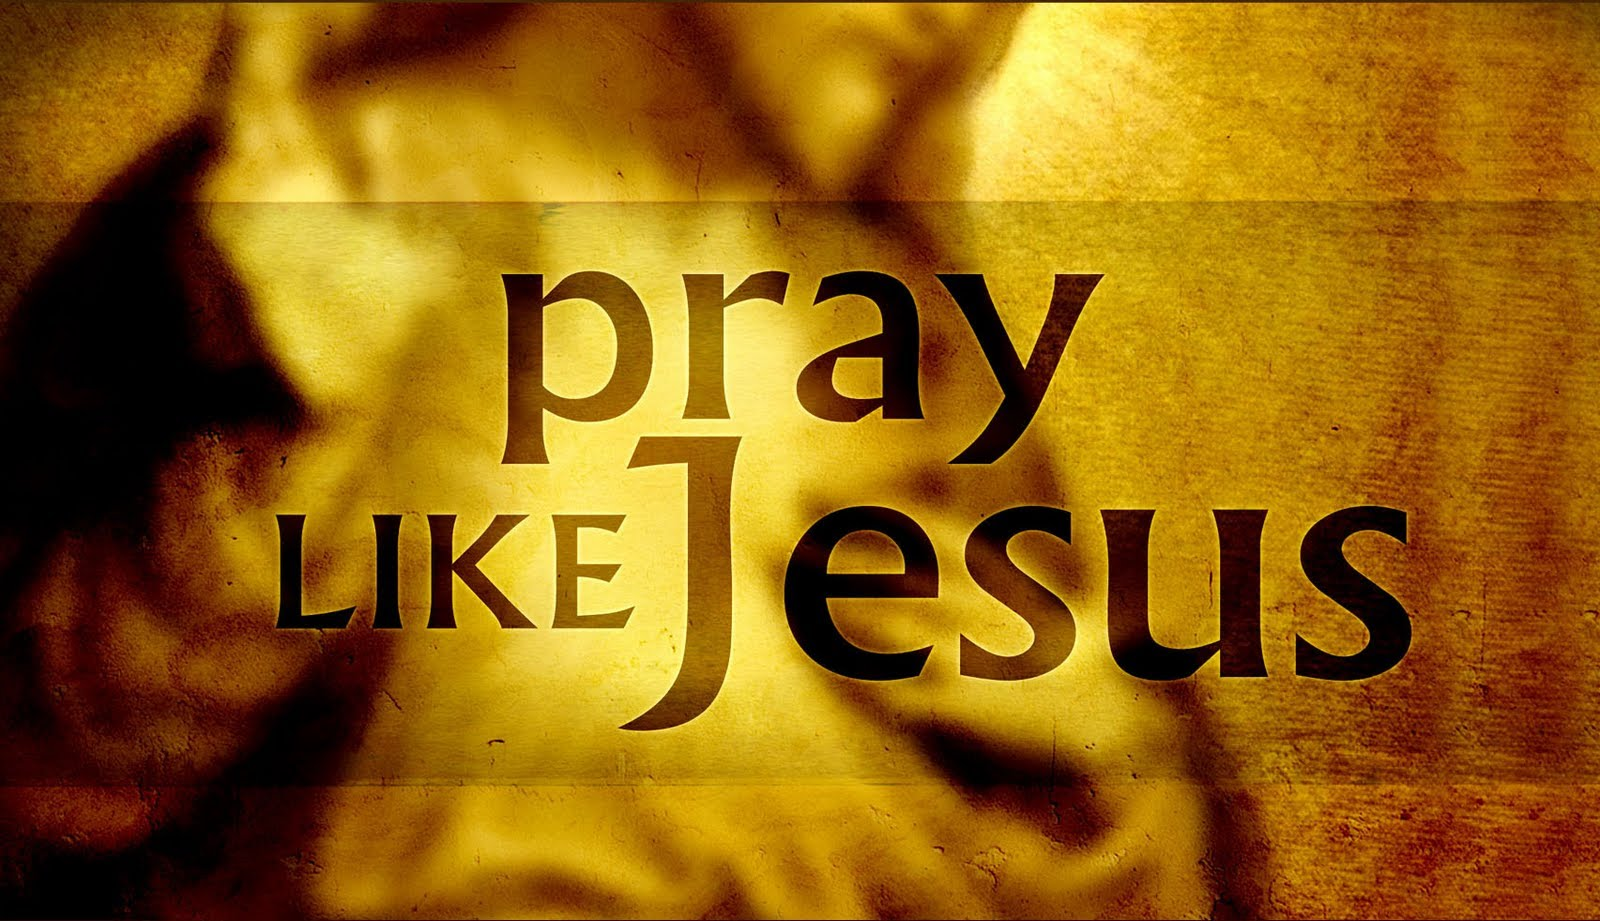 The Lord's Prayer, Pray Like Jesus